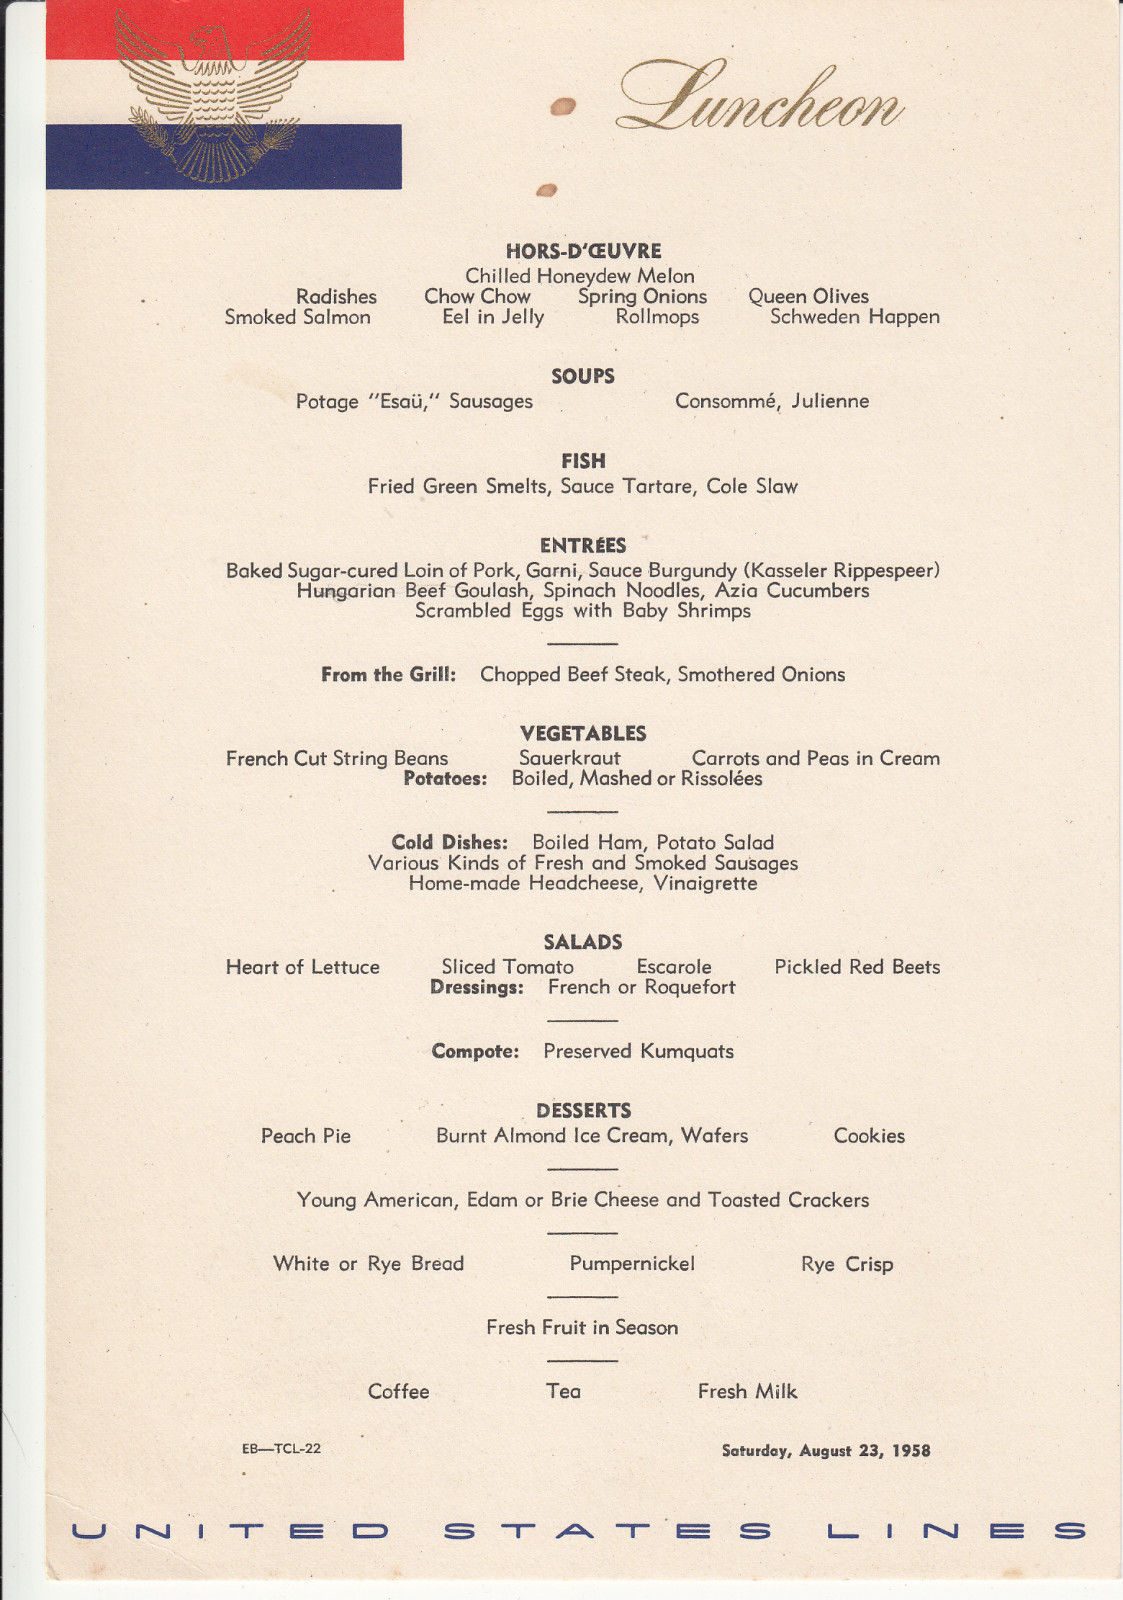 1958 aug. 24 S. S. United States Luncheon Menu Cruise Ship, US Lines